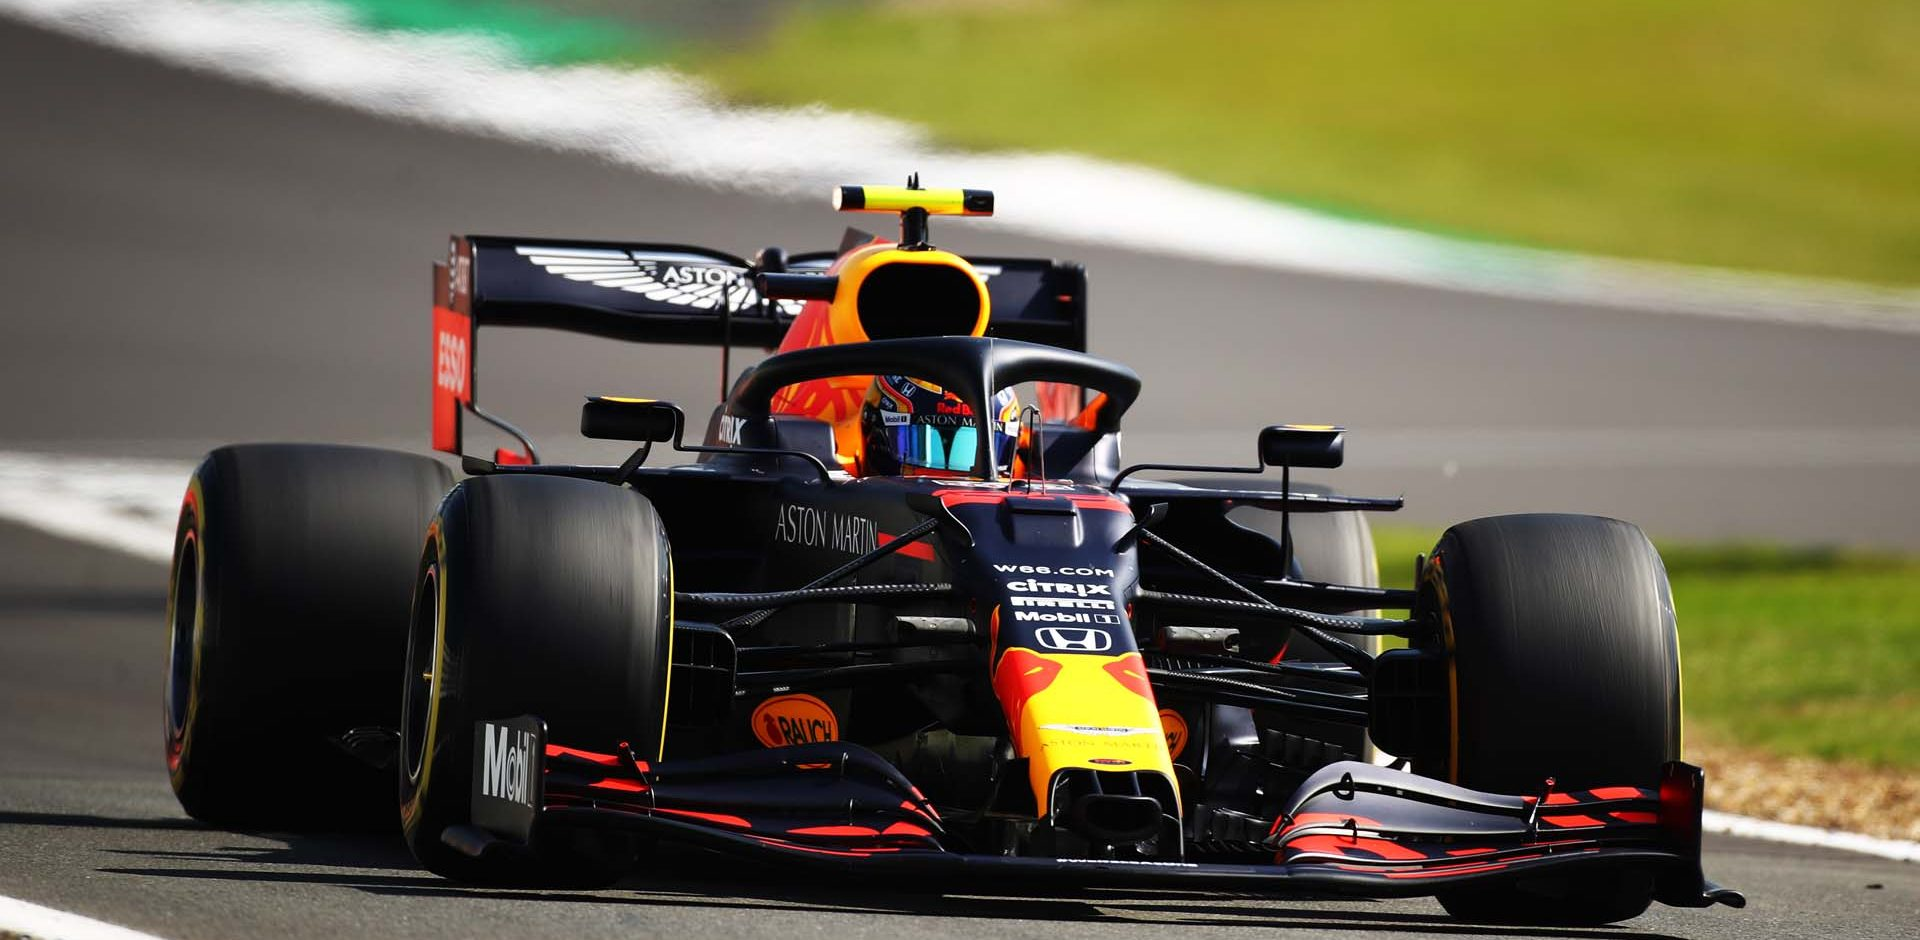 NORTHAMPTON, ENGLAND - JULY 31: Alexander Albon of Thailand driving the (23) Aston Martin Red Bull Racing RB16 on track during practice for the F1 Grand Prix of Great Britain at Silverstone on July 31, 2020 in Northampton, England. (Photo by Bryn Lennon/Getty Images)